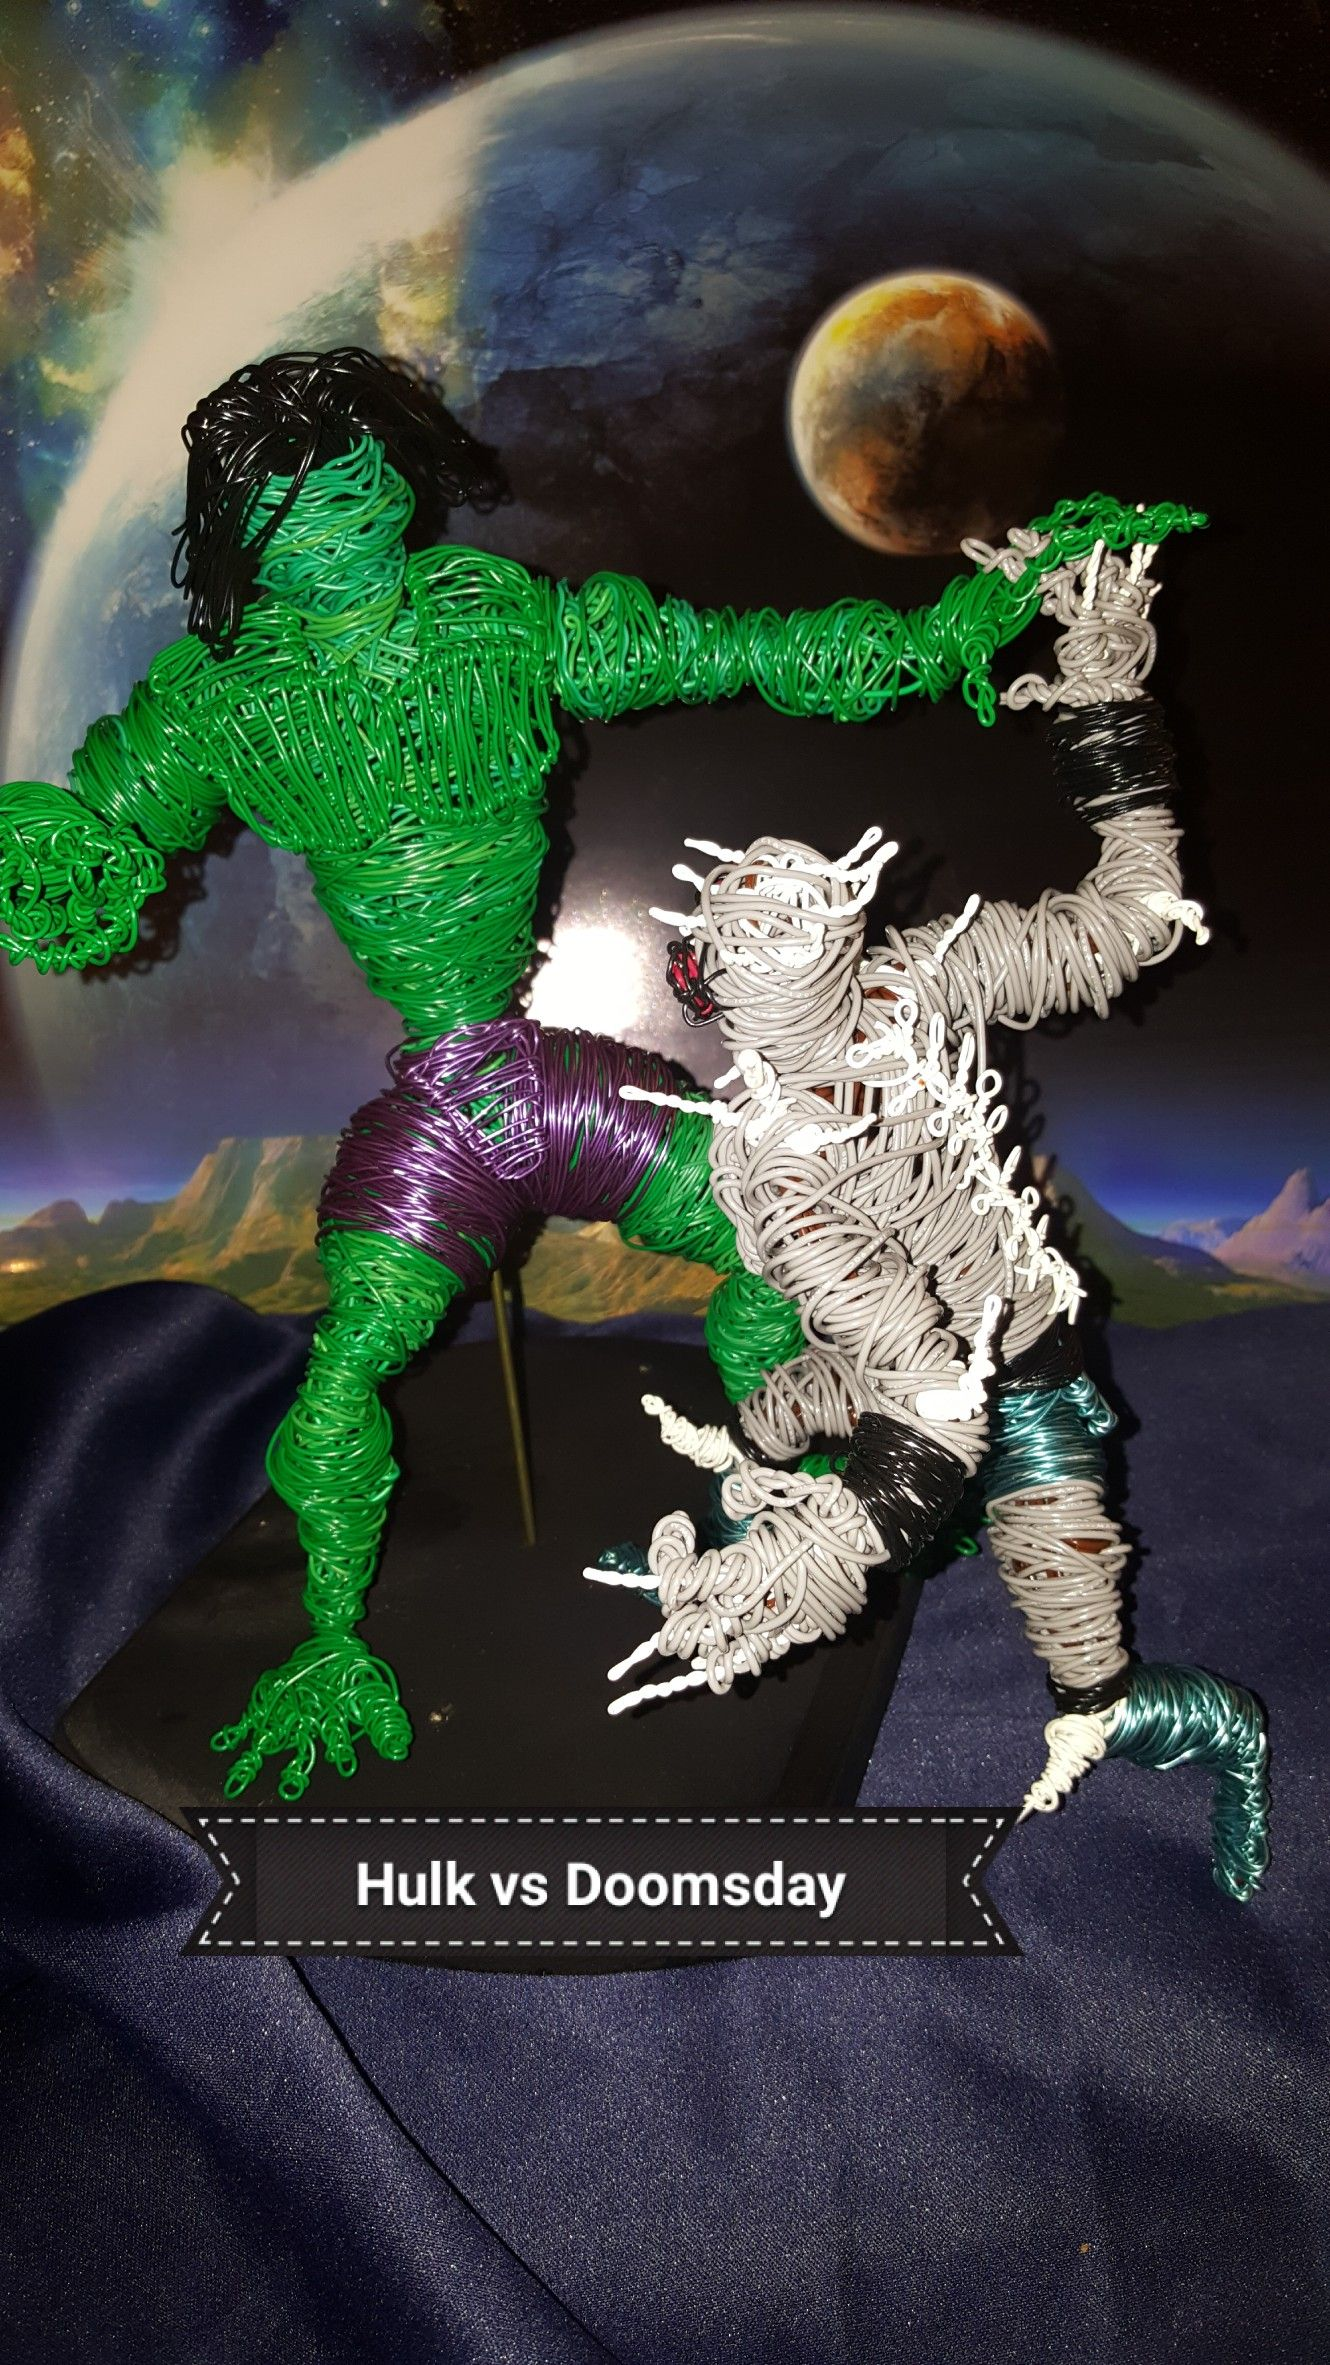 An epic battle Hulk vs Doomsday. These two powerful beings ... Doomsday Vs Hulk Who Wins